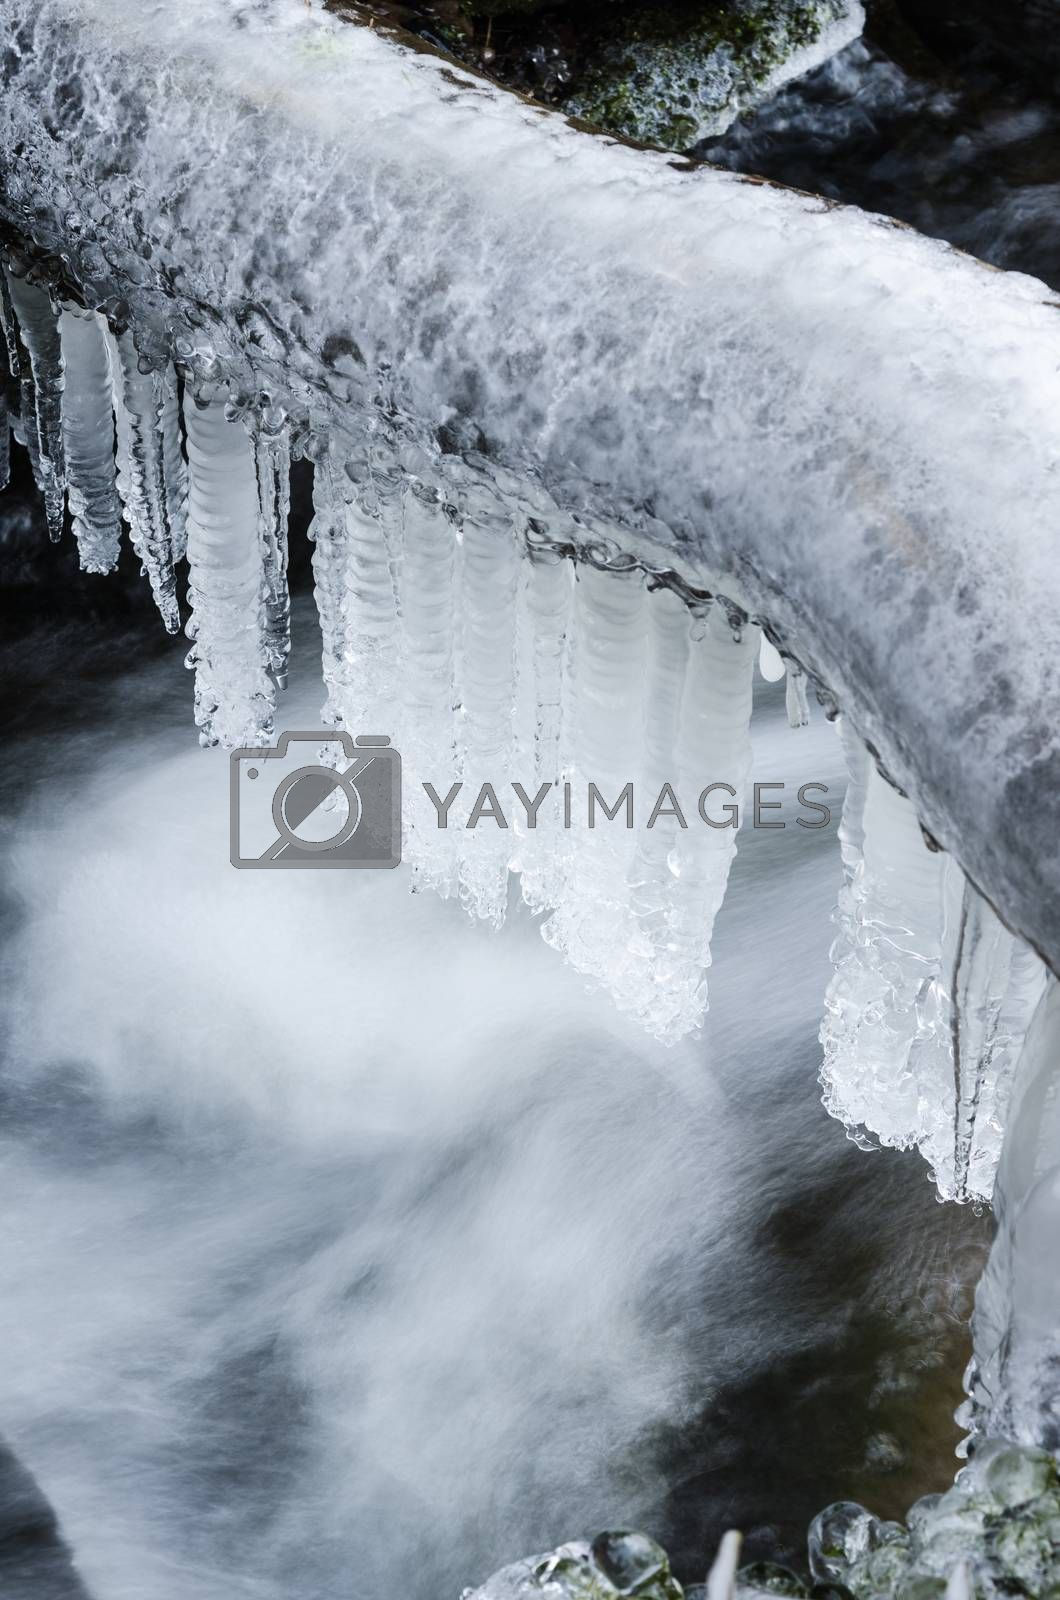 Royalty free image of Frozen icicles on water flow,  close-up by breeze09